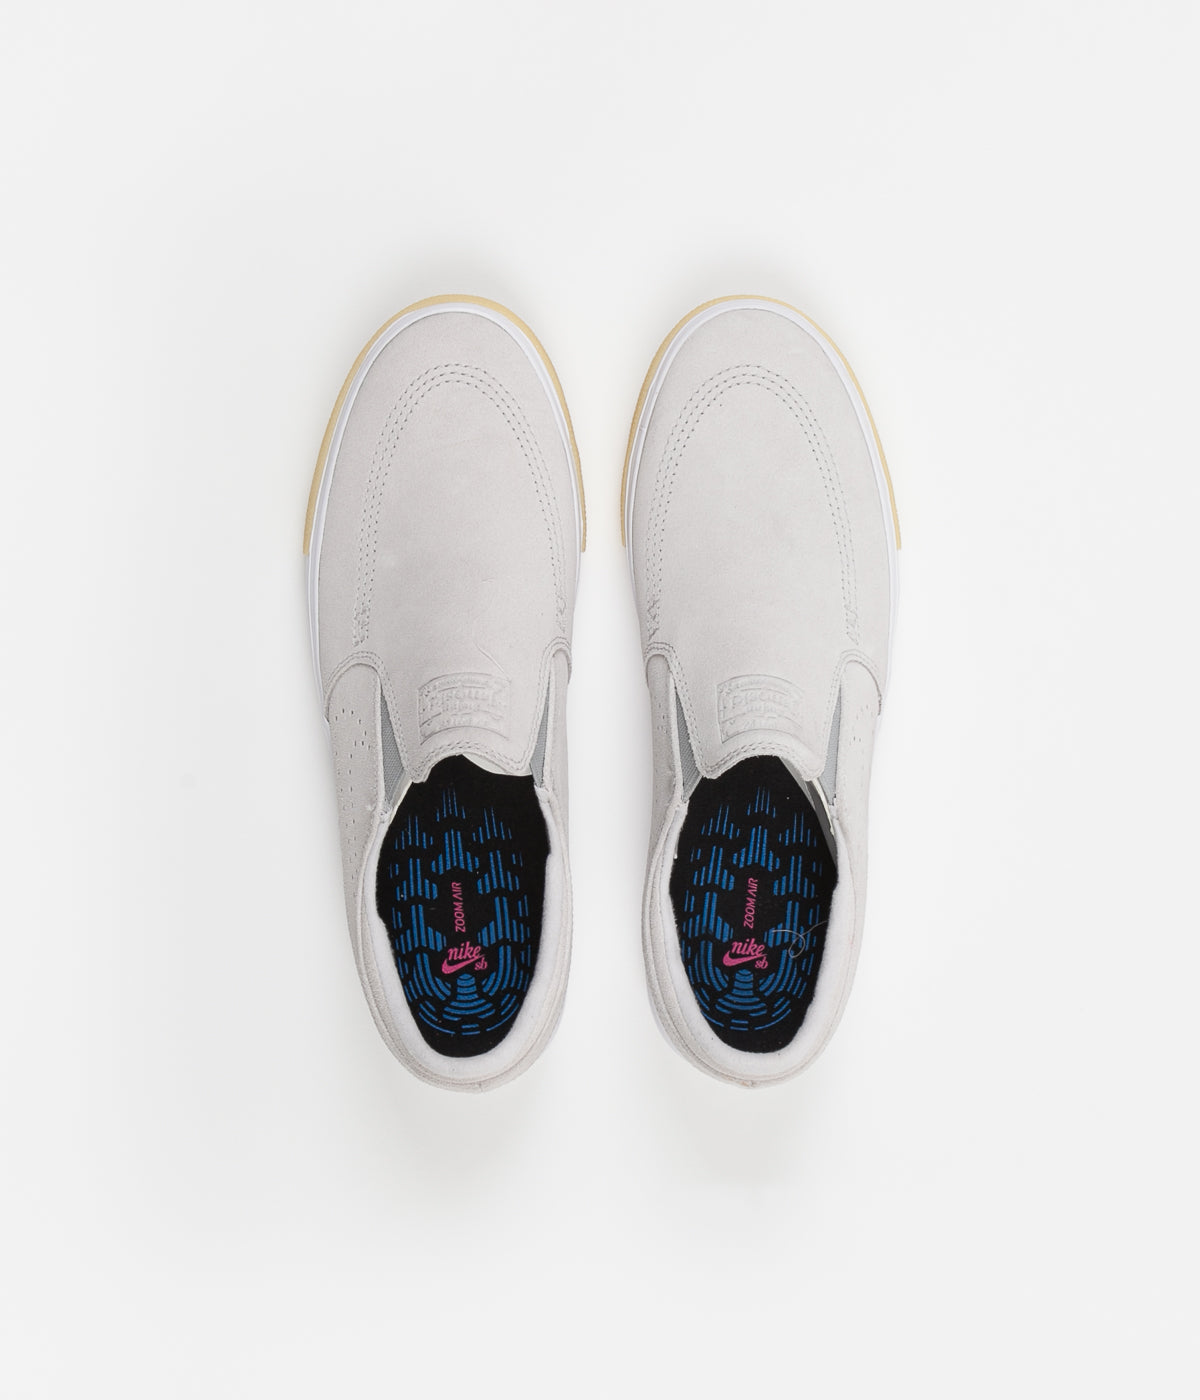 innovative design 44abf 2a0f2 Nike SB Janoski Slip On Remastered Shoes - White / White ...